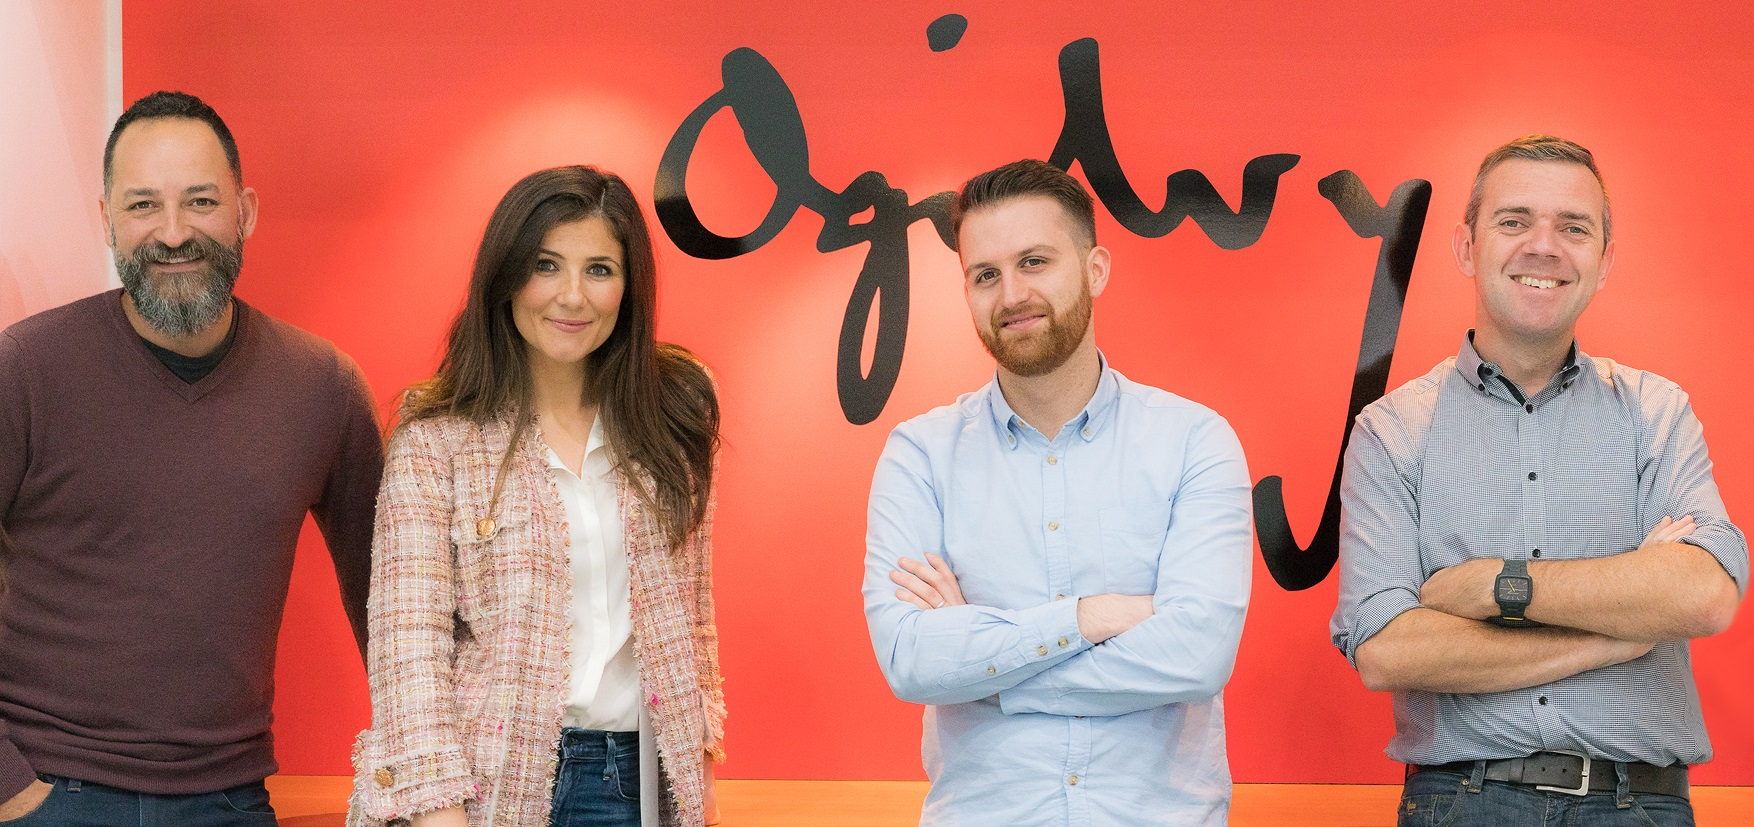 New Ogilvy Brisbane Management team LtoR: Nobay, Young, Pettit and Vine